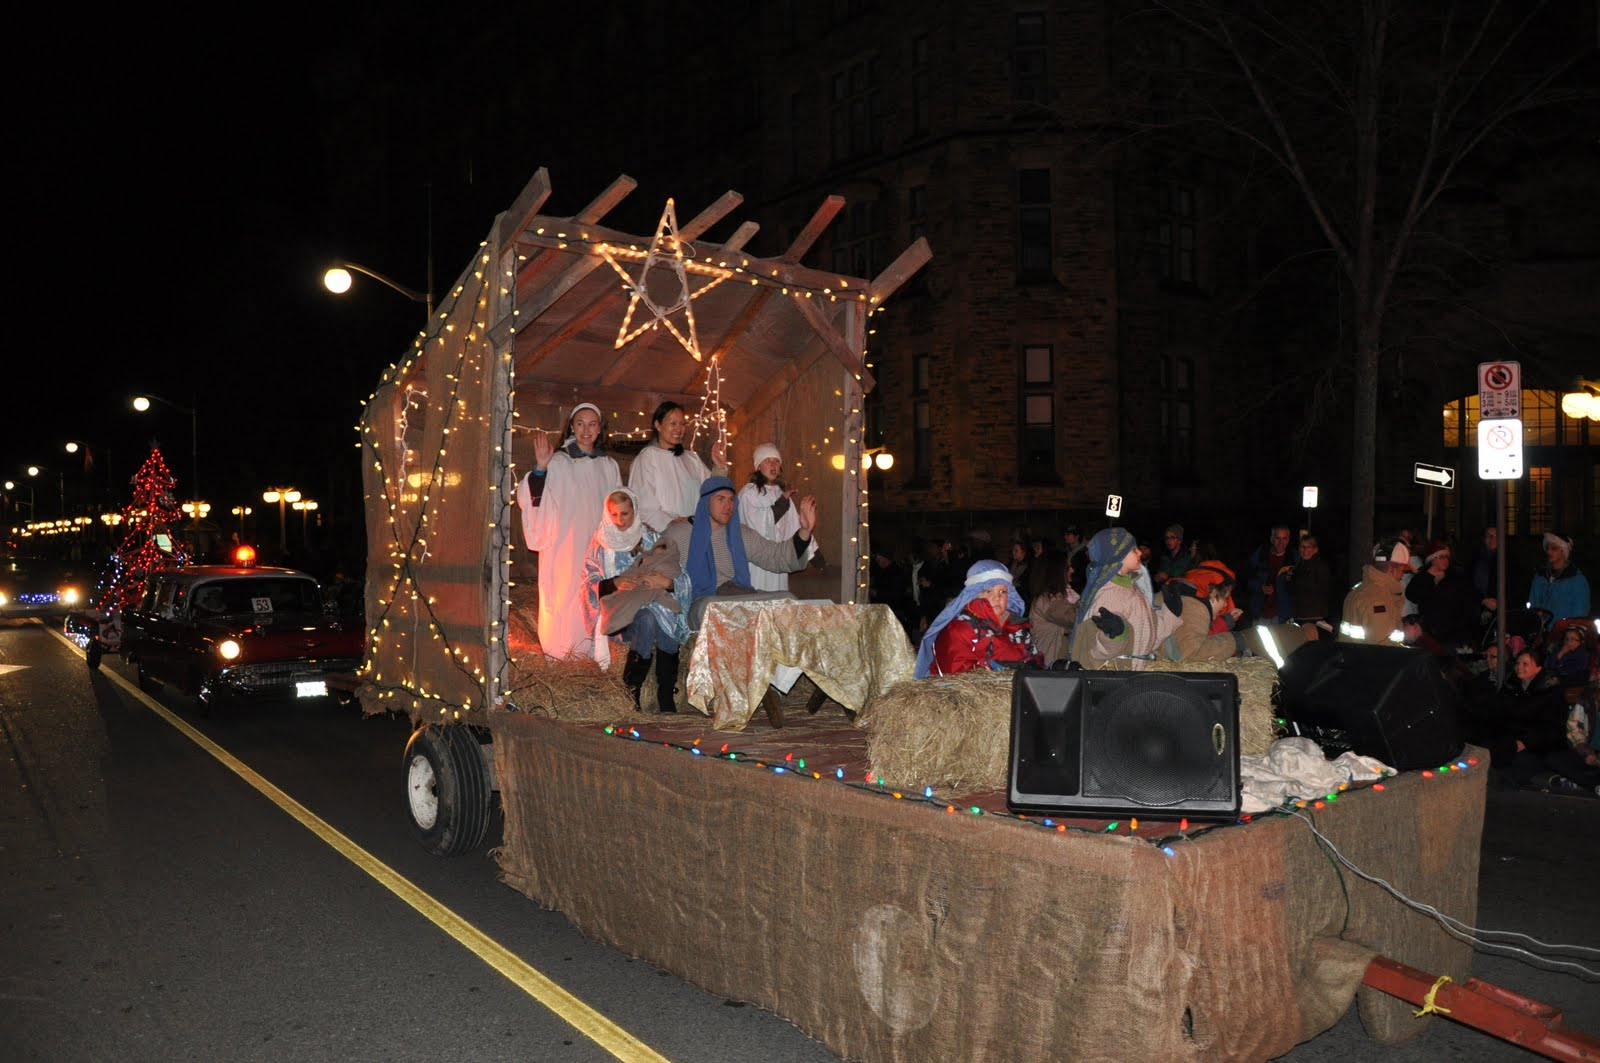 Church Parade Float Ideas http://orbiscatholicussecundus.blogspot.com/2011/12/catholic-culture-christmas-parade.html